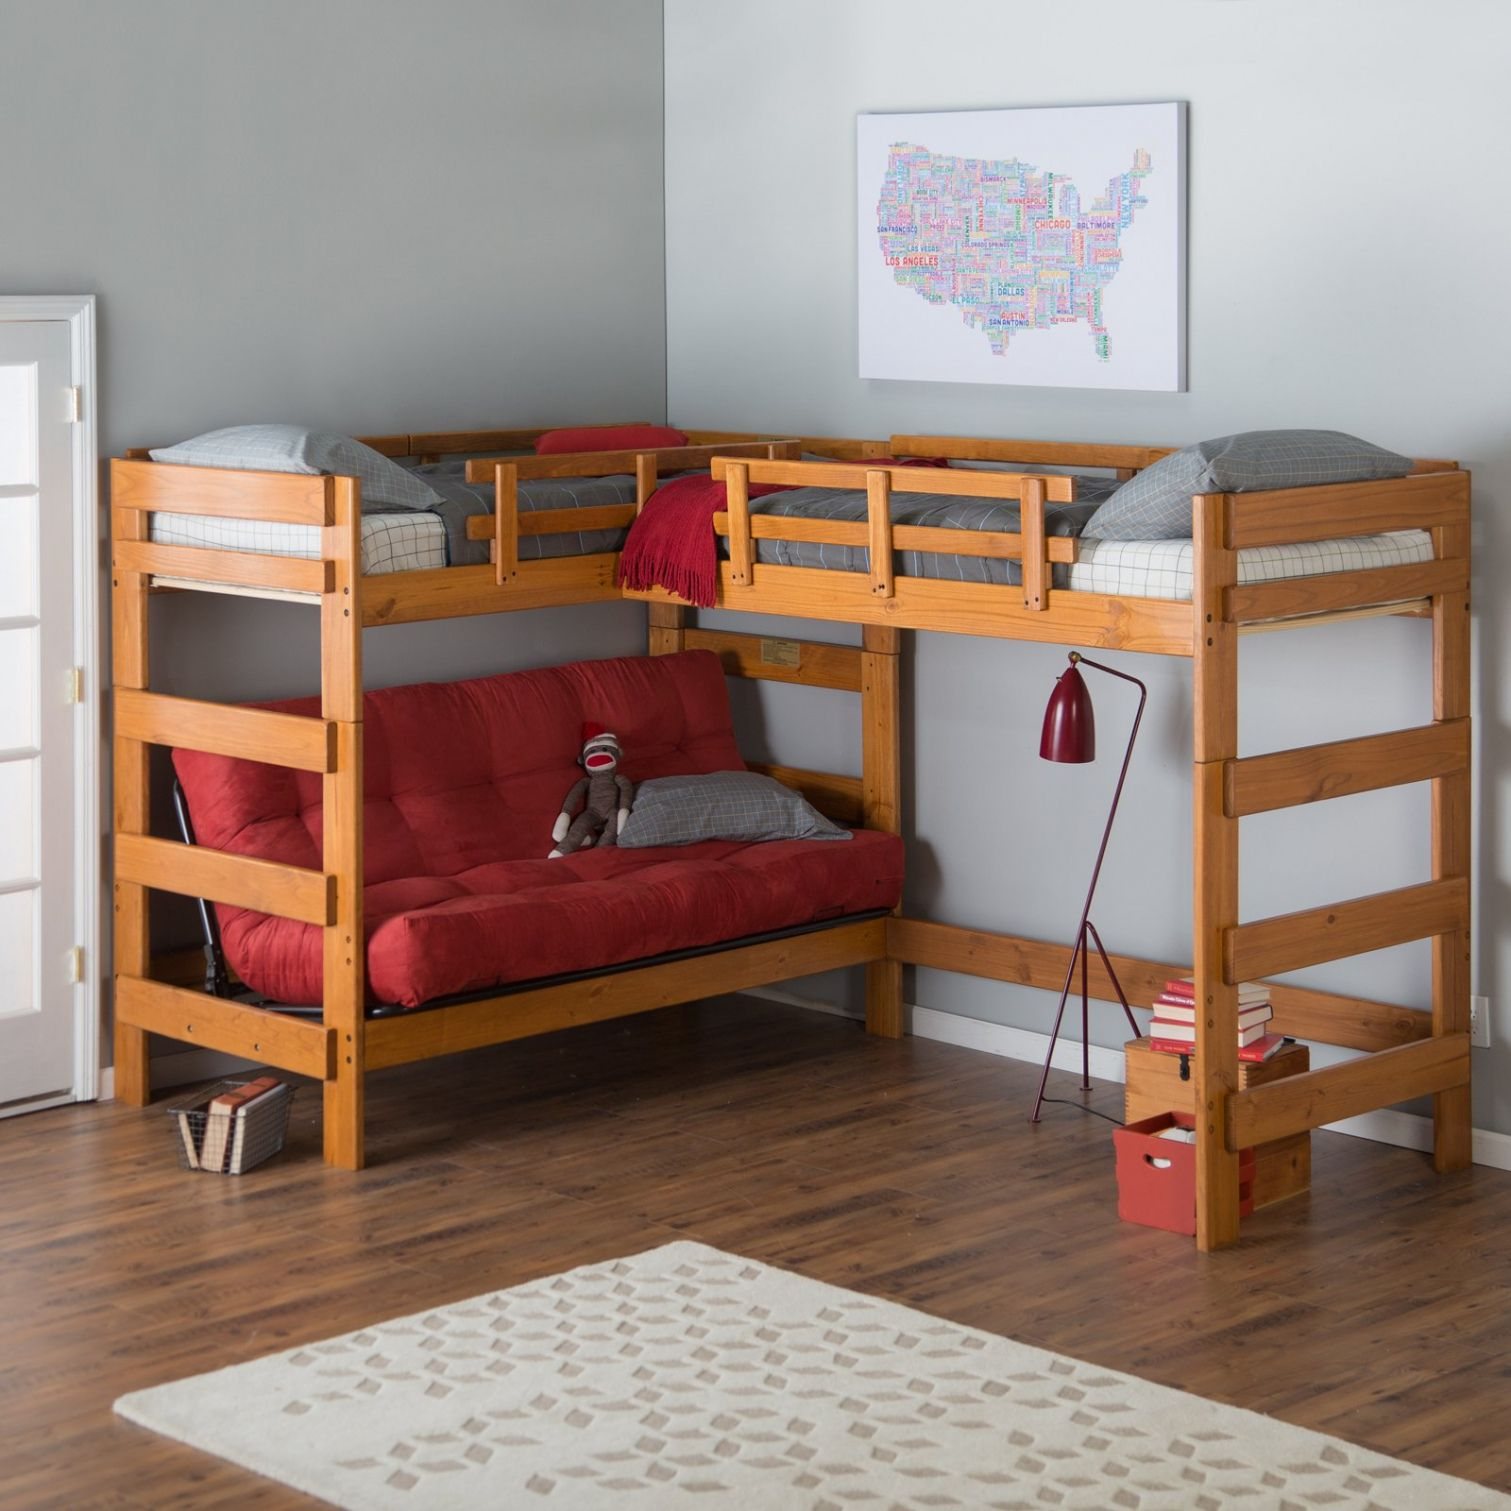 Loft bed storage stairs  Where to Buy Kids Bunk Beds  Interior Paint Color Ideas Check more